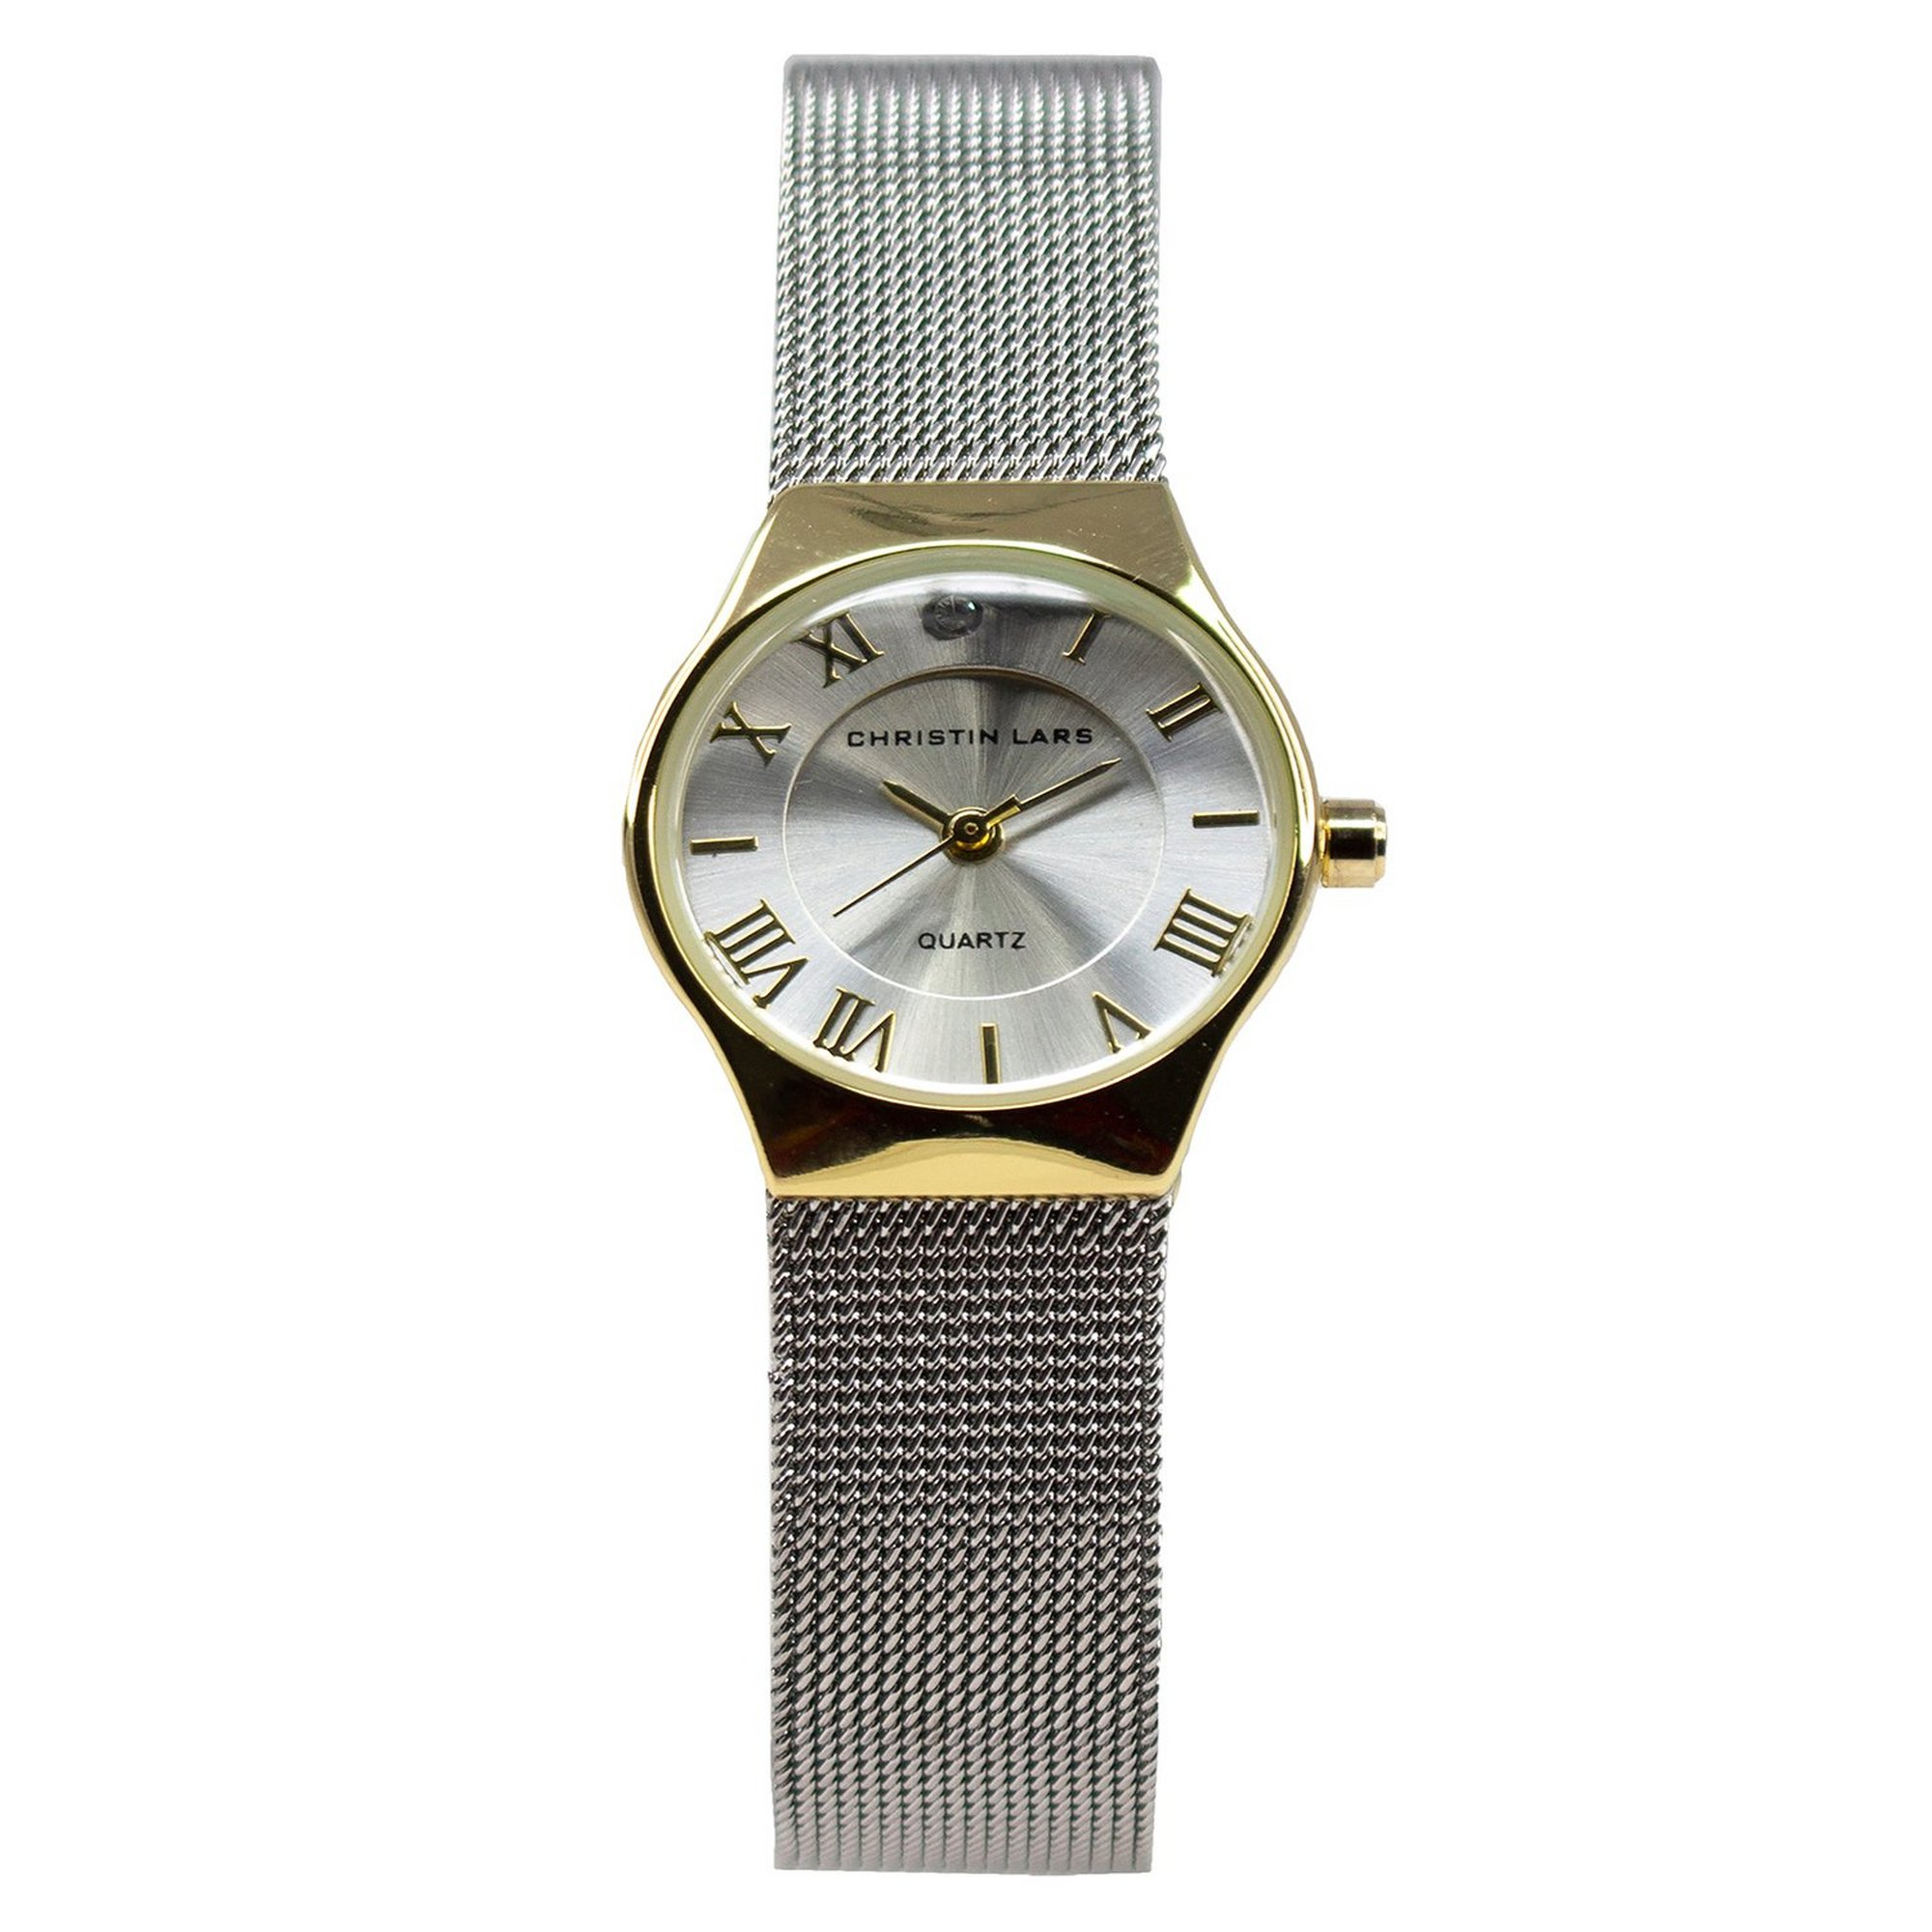 Image of Christin Lars Silver Mesh Strap Watch